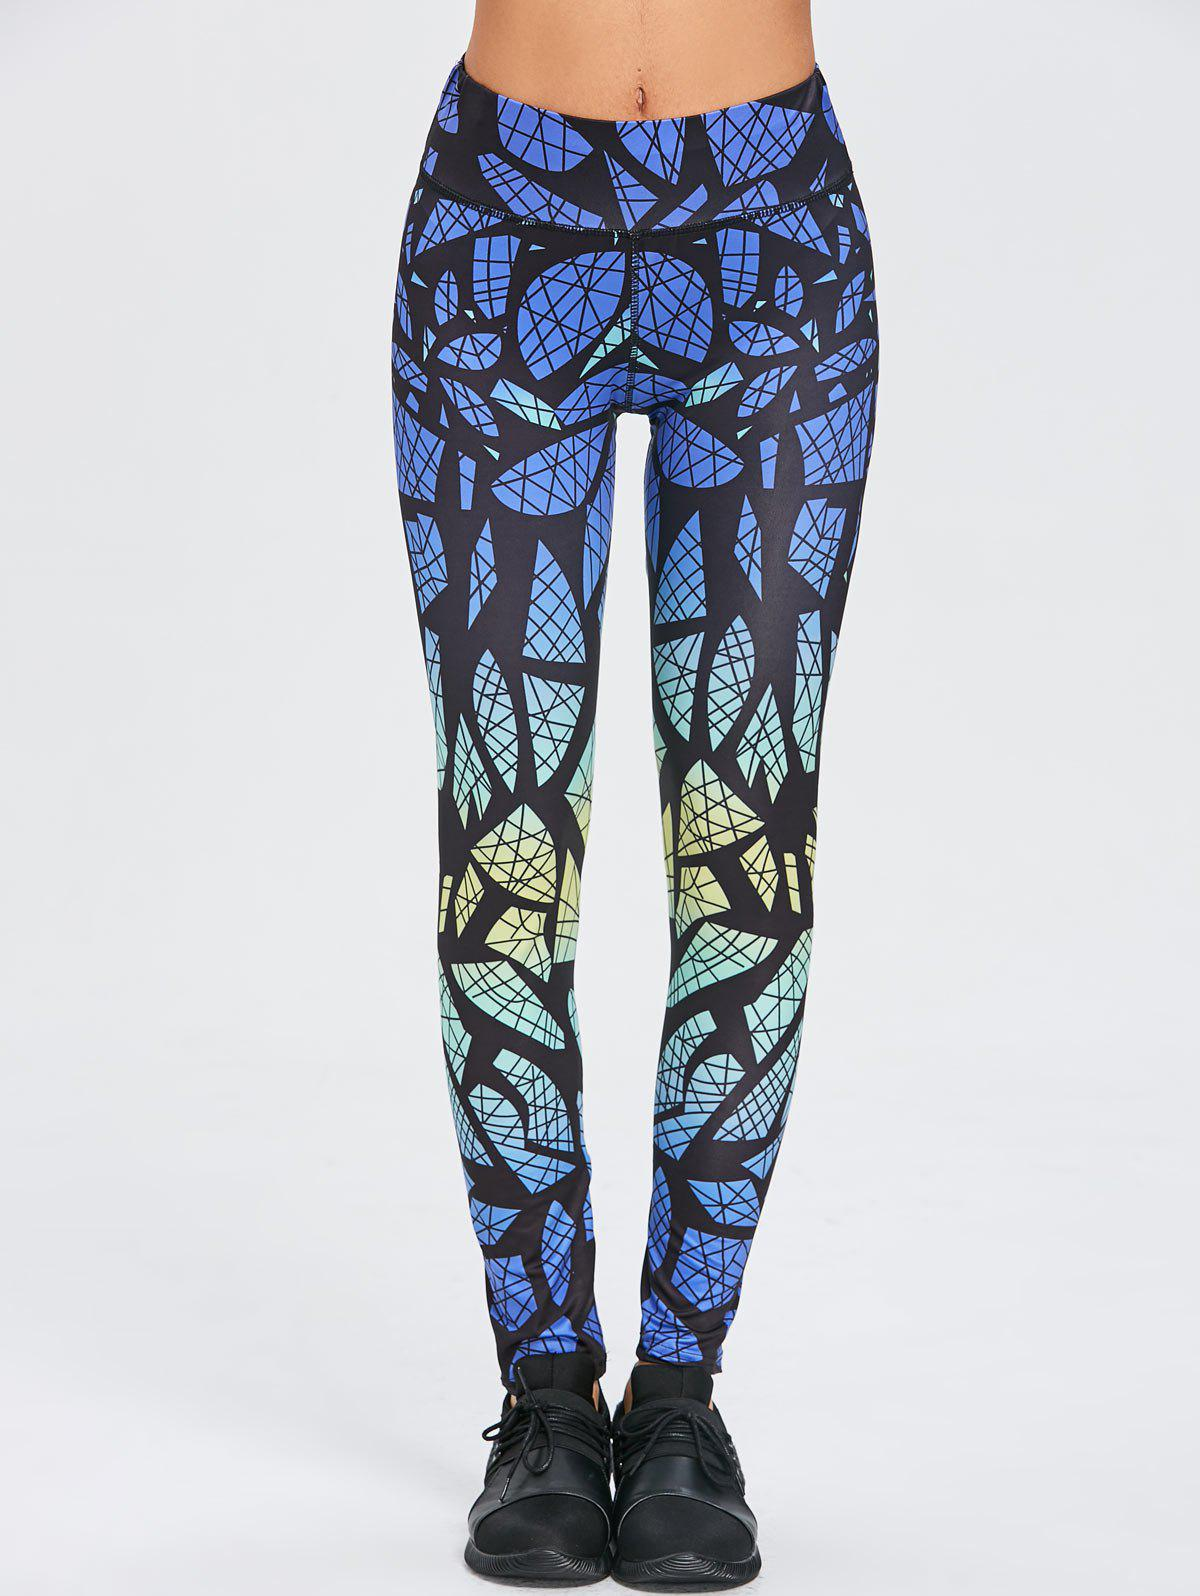 High Waist Geometric Workout Leggings - COLORMIX L